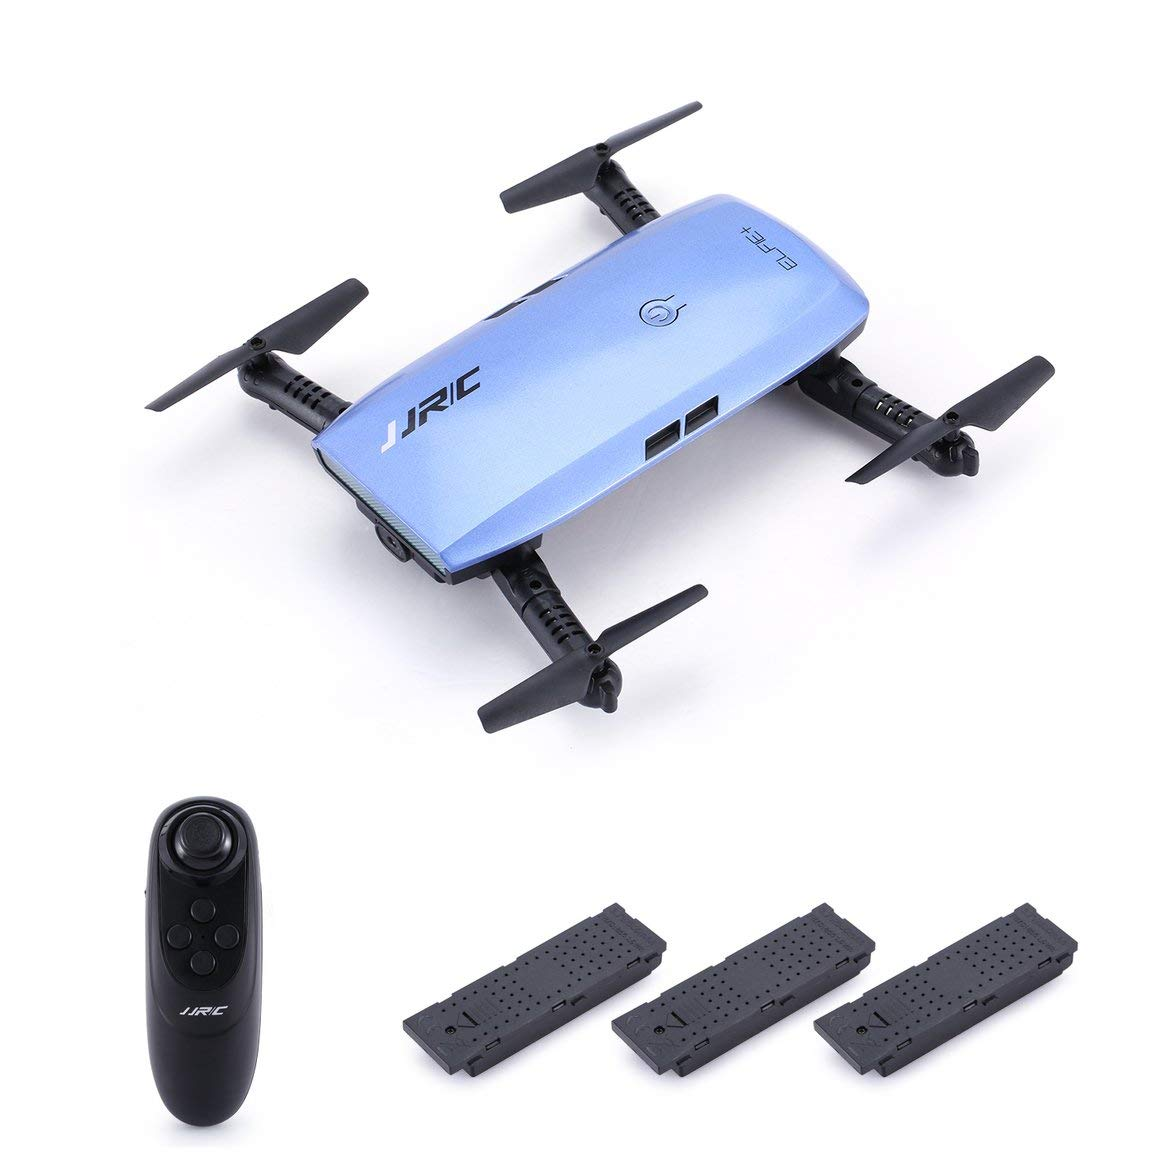 Kongqiabona JJR/C H47 Elfie WiFi FPV Drone with 720P HD Camera Altitude Hold Mode Foldable G-Sensor Mini RC Selfie Quadcopter,3 Battery